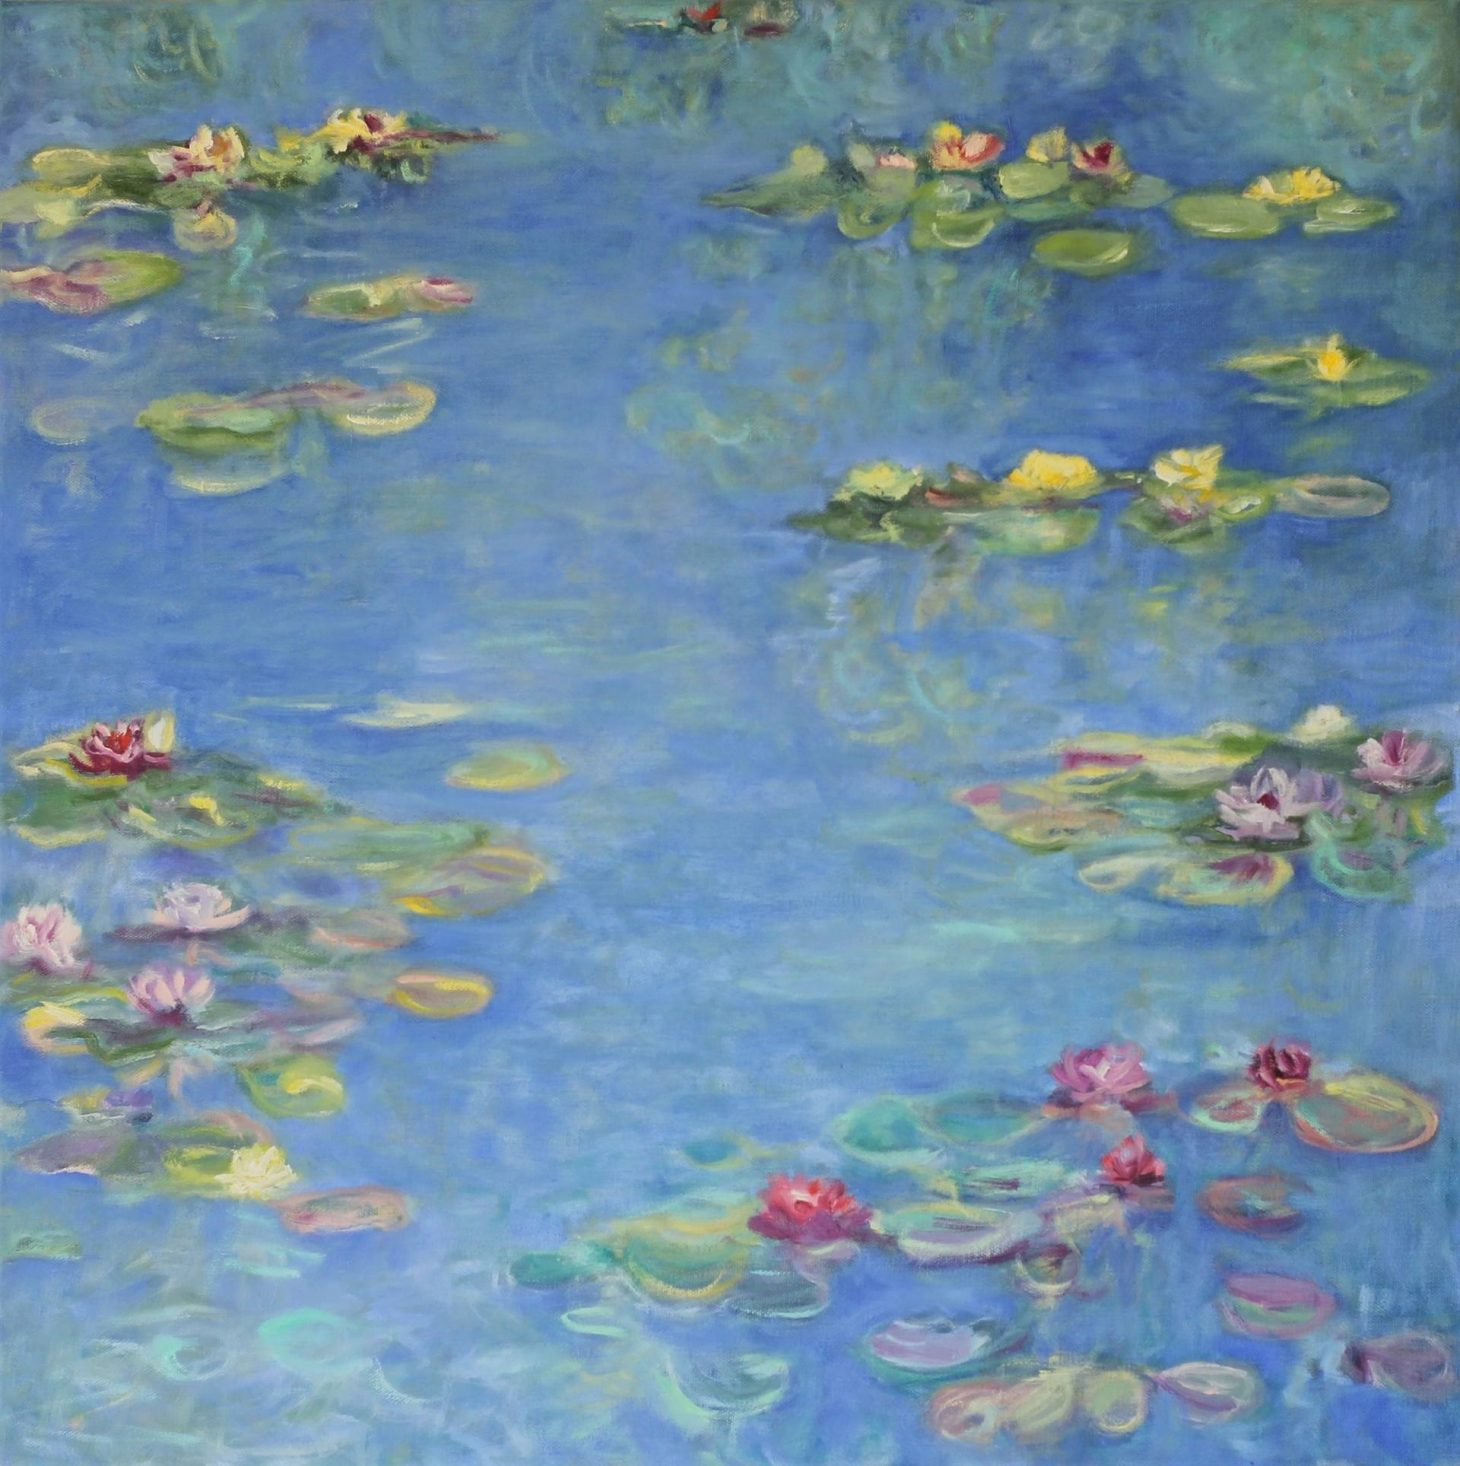 Waterlily Pond by Raewyn Carboni